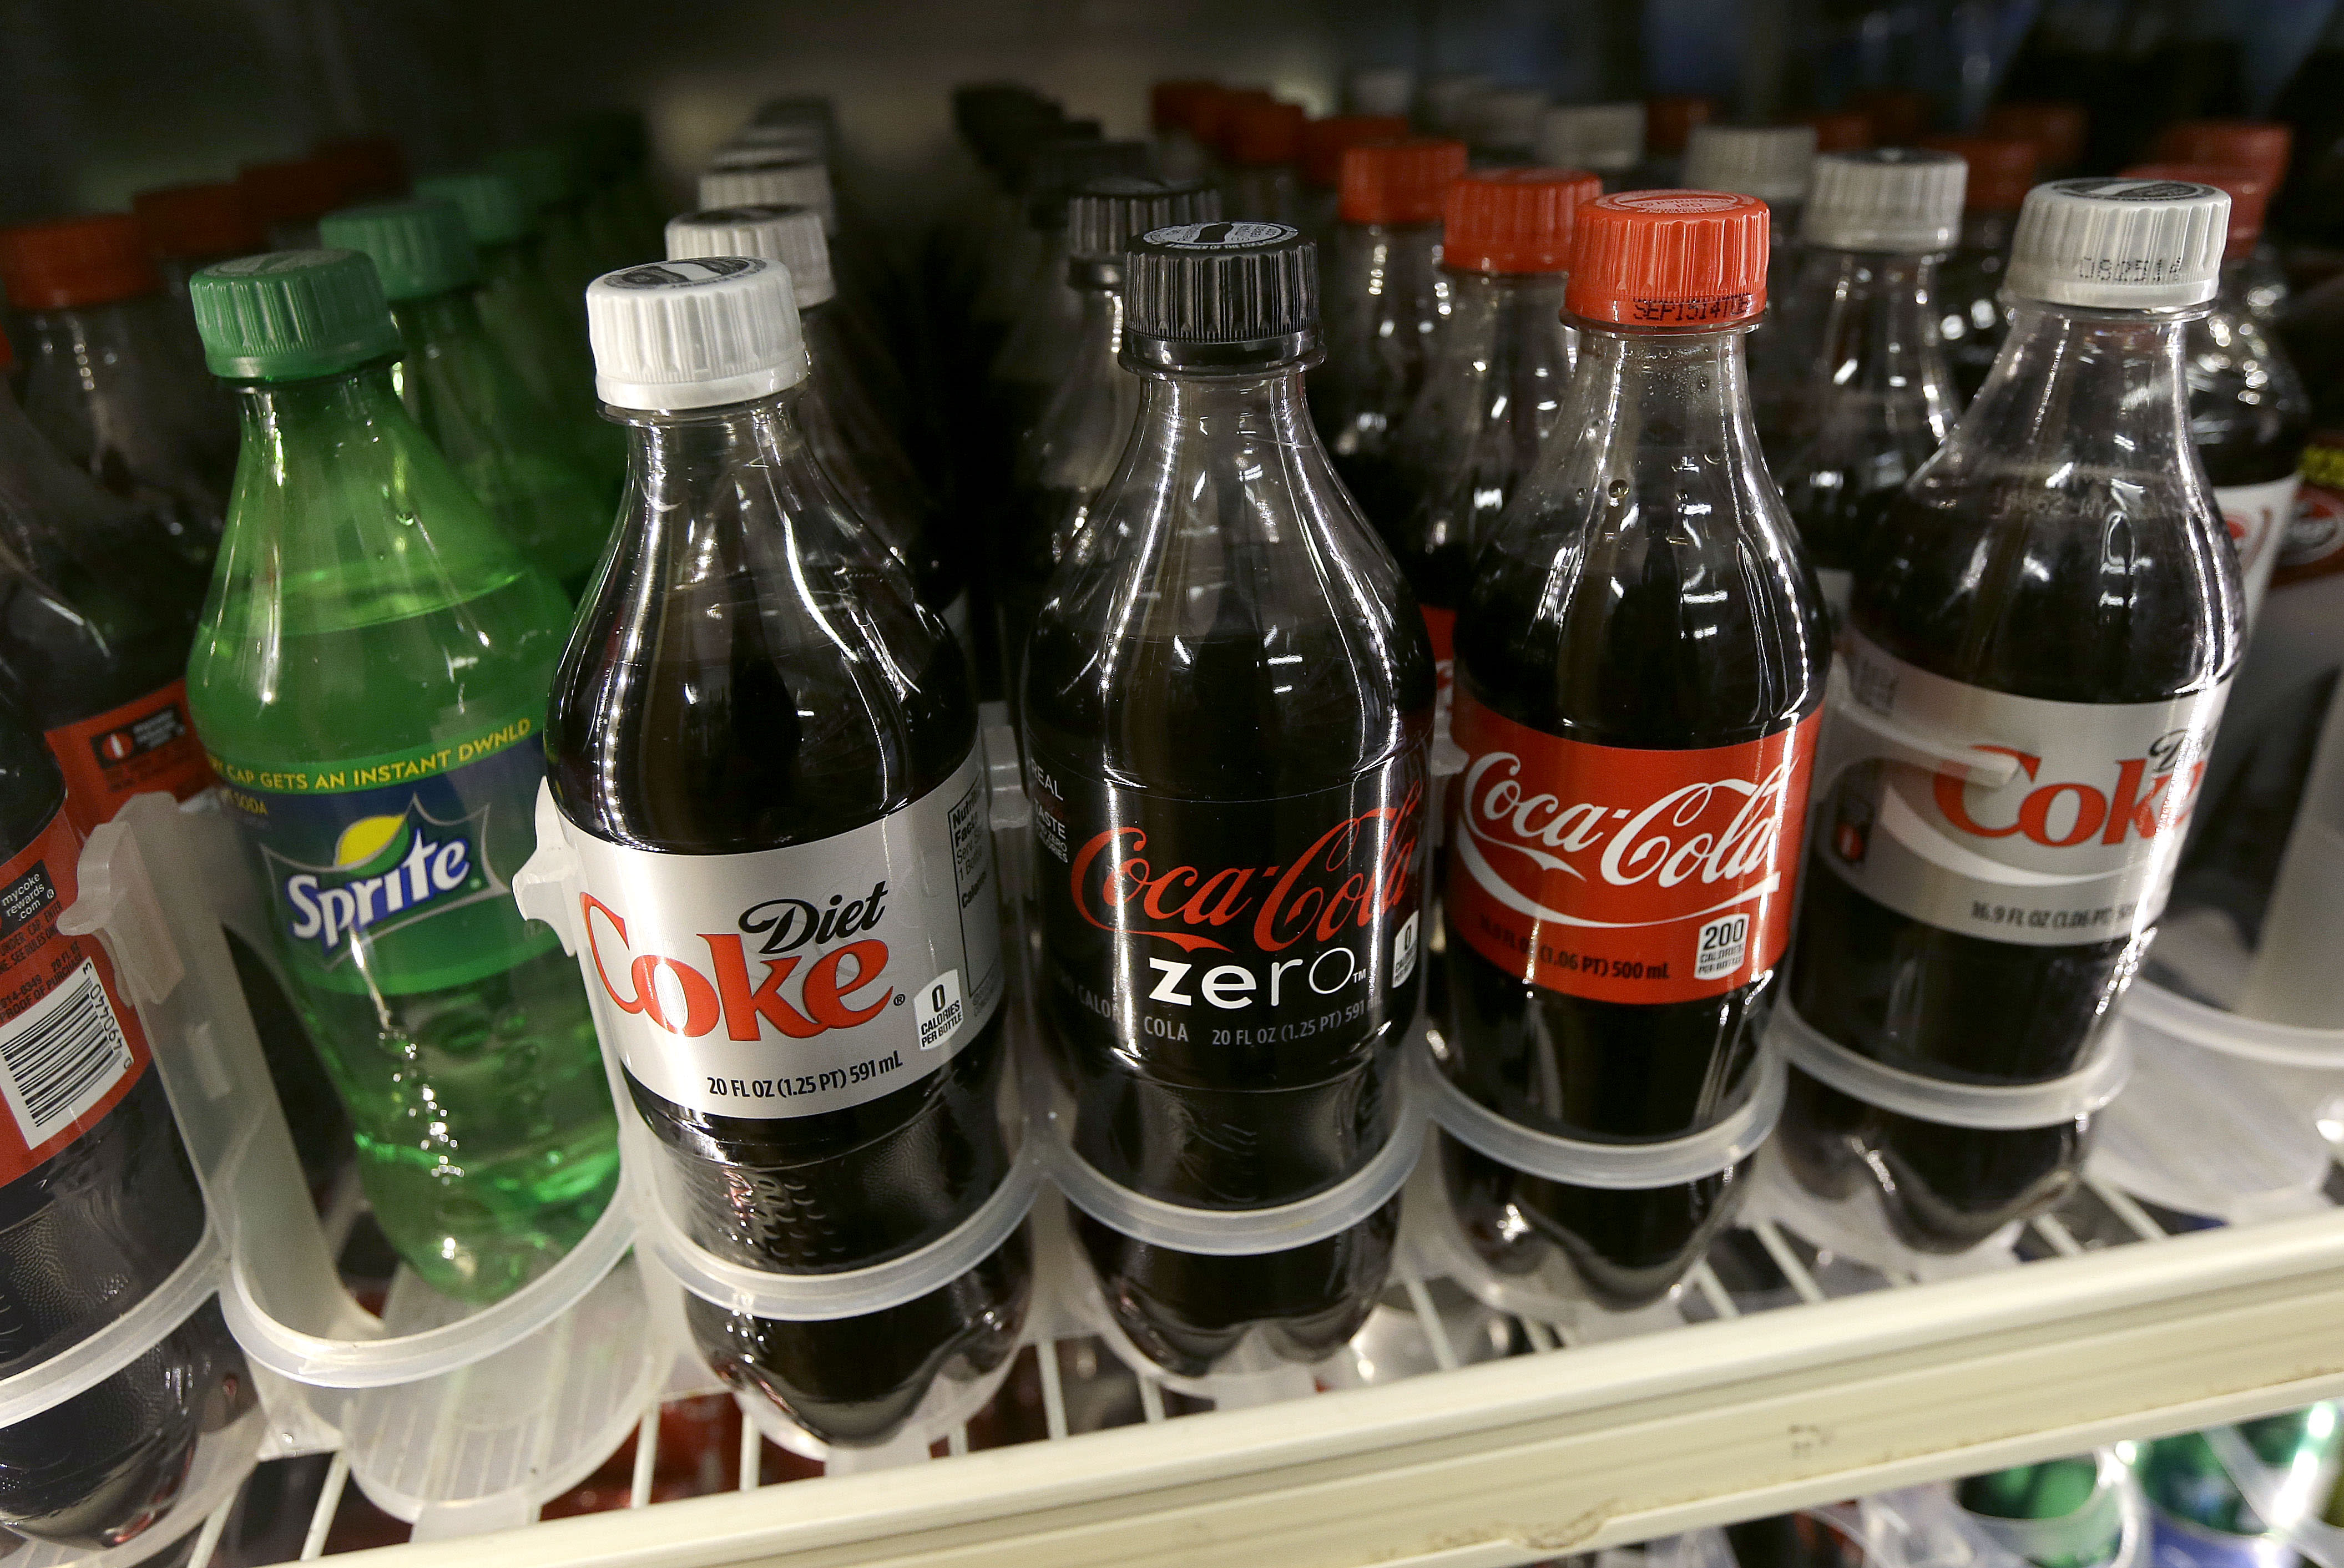 Maine proposes ban on junk food purchases with food stamps